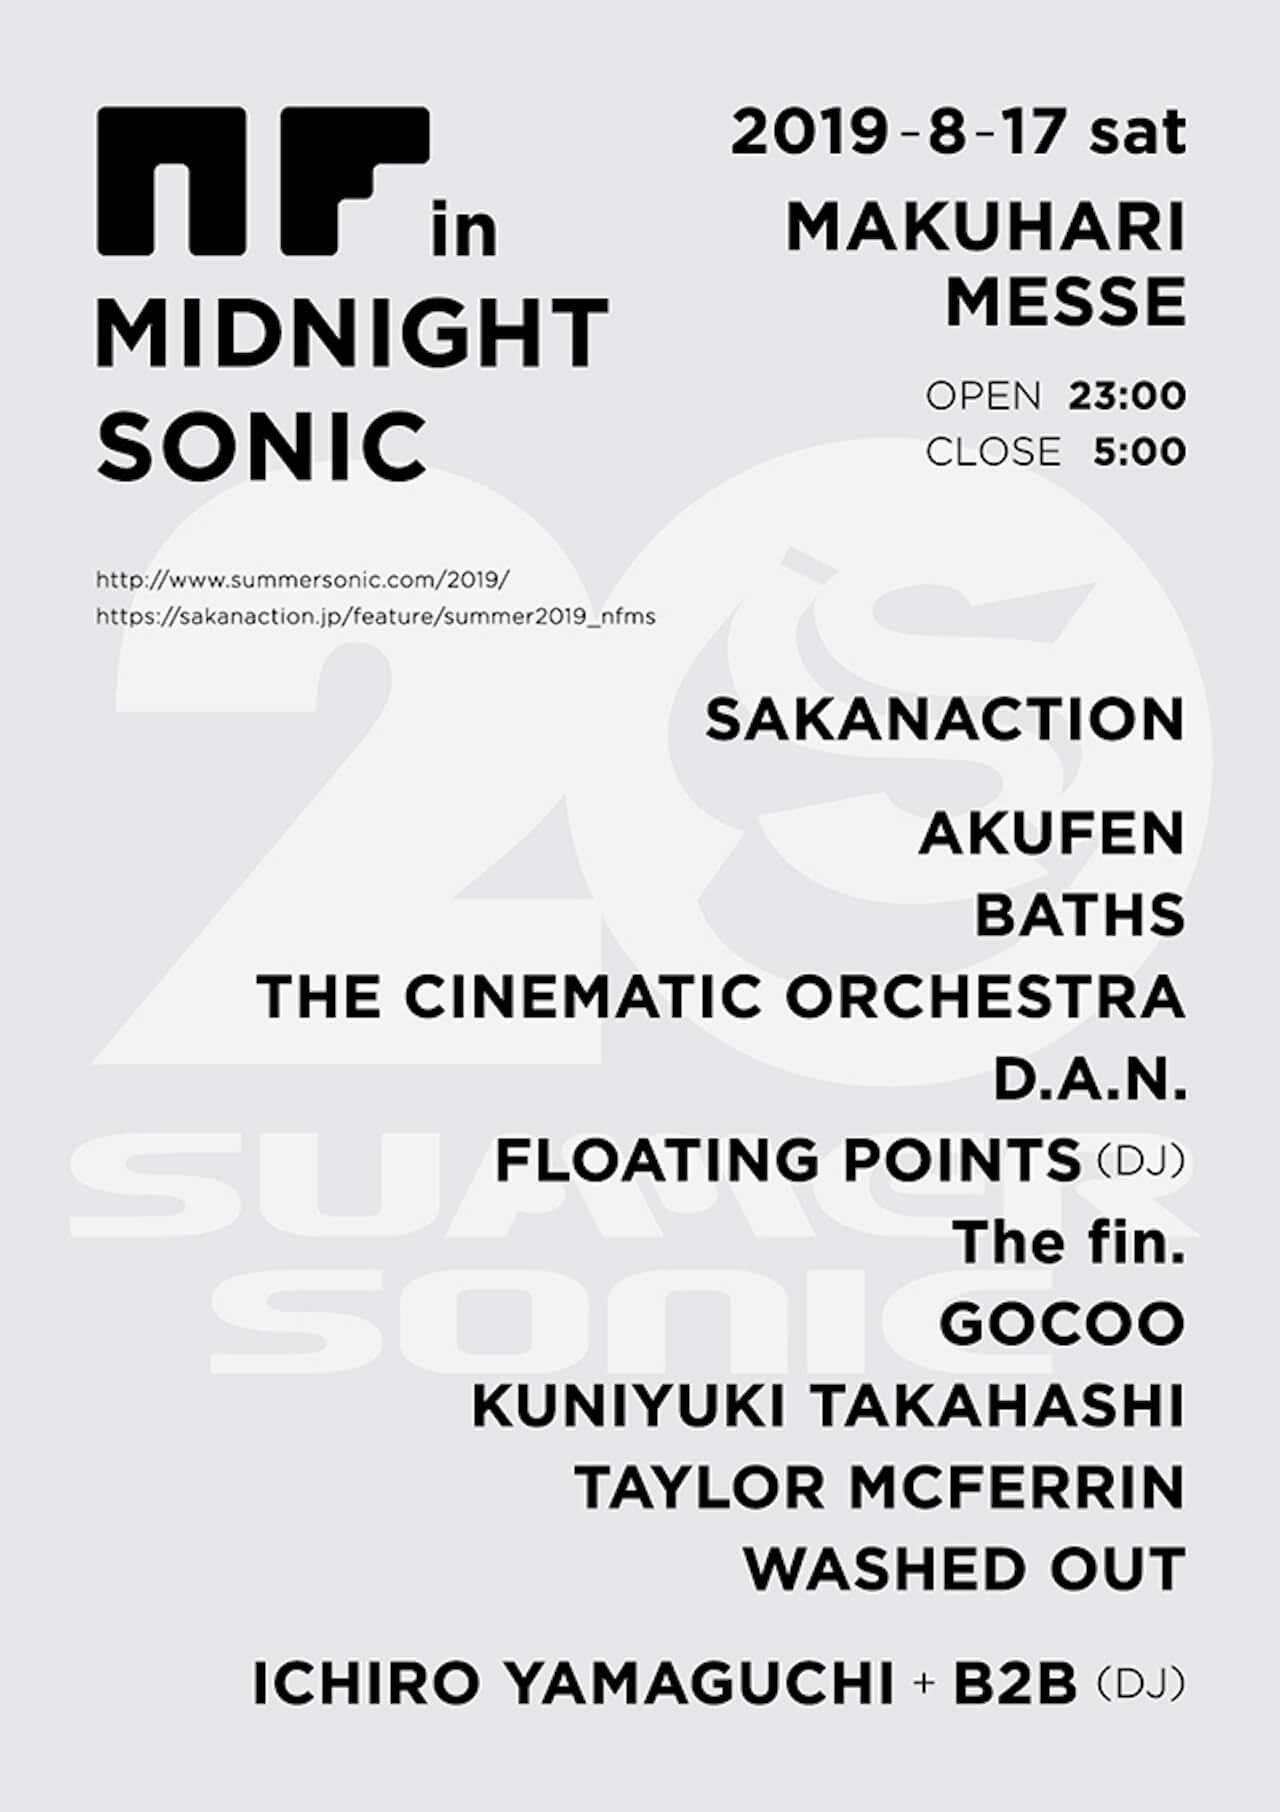 「NF in MIDNIGHT SONIC」に出演|Floating Points、Sónar 2019にて披露したDJ音源がBBCで公開中 music190814-floating-points-2